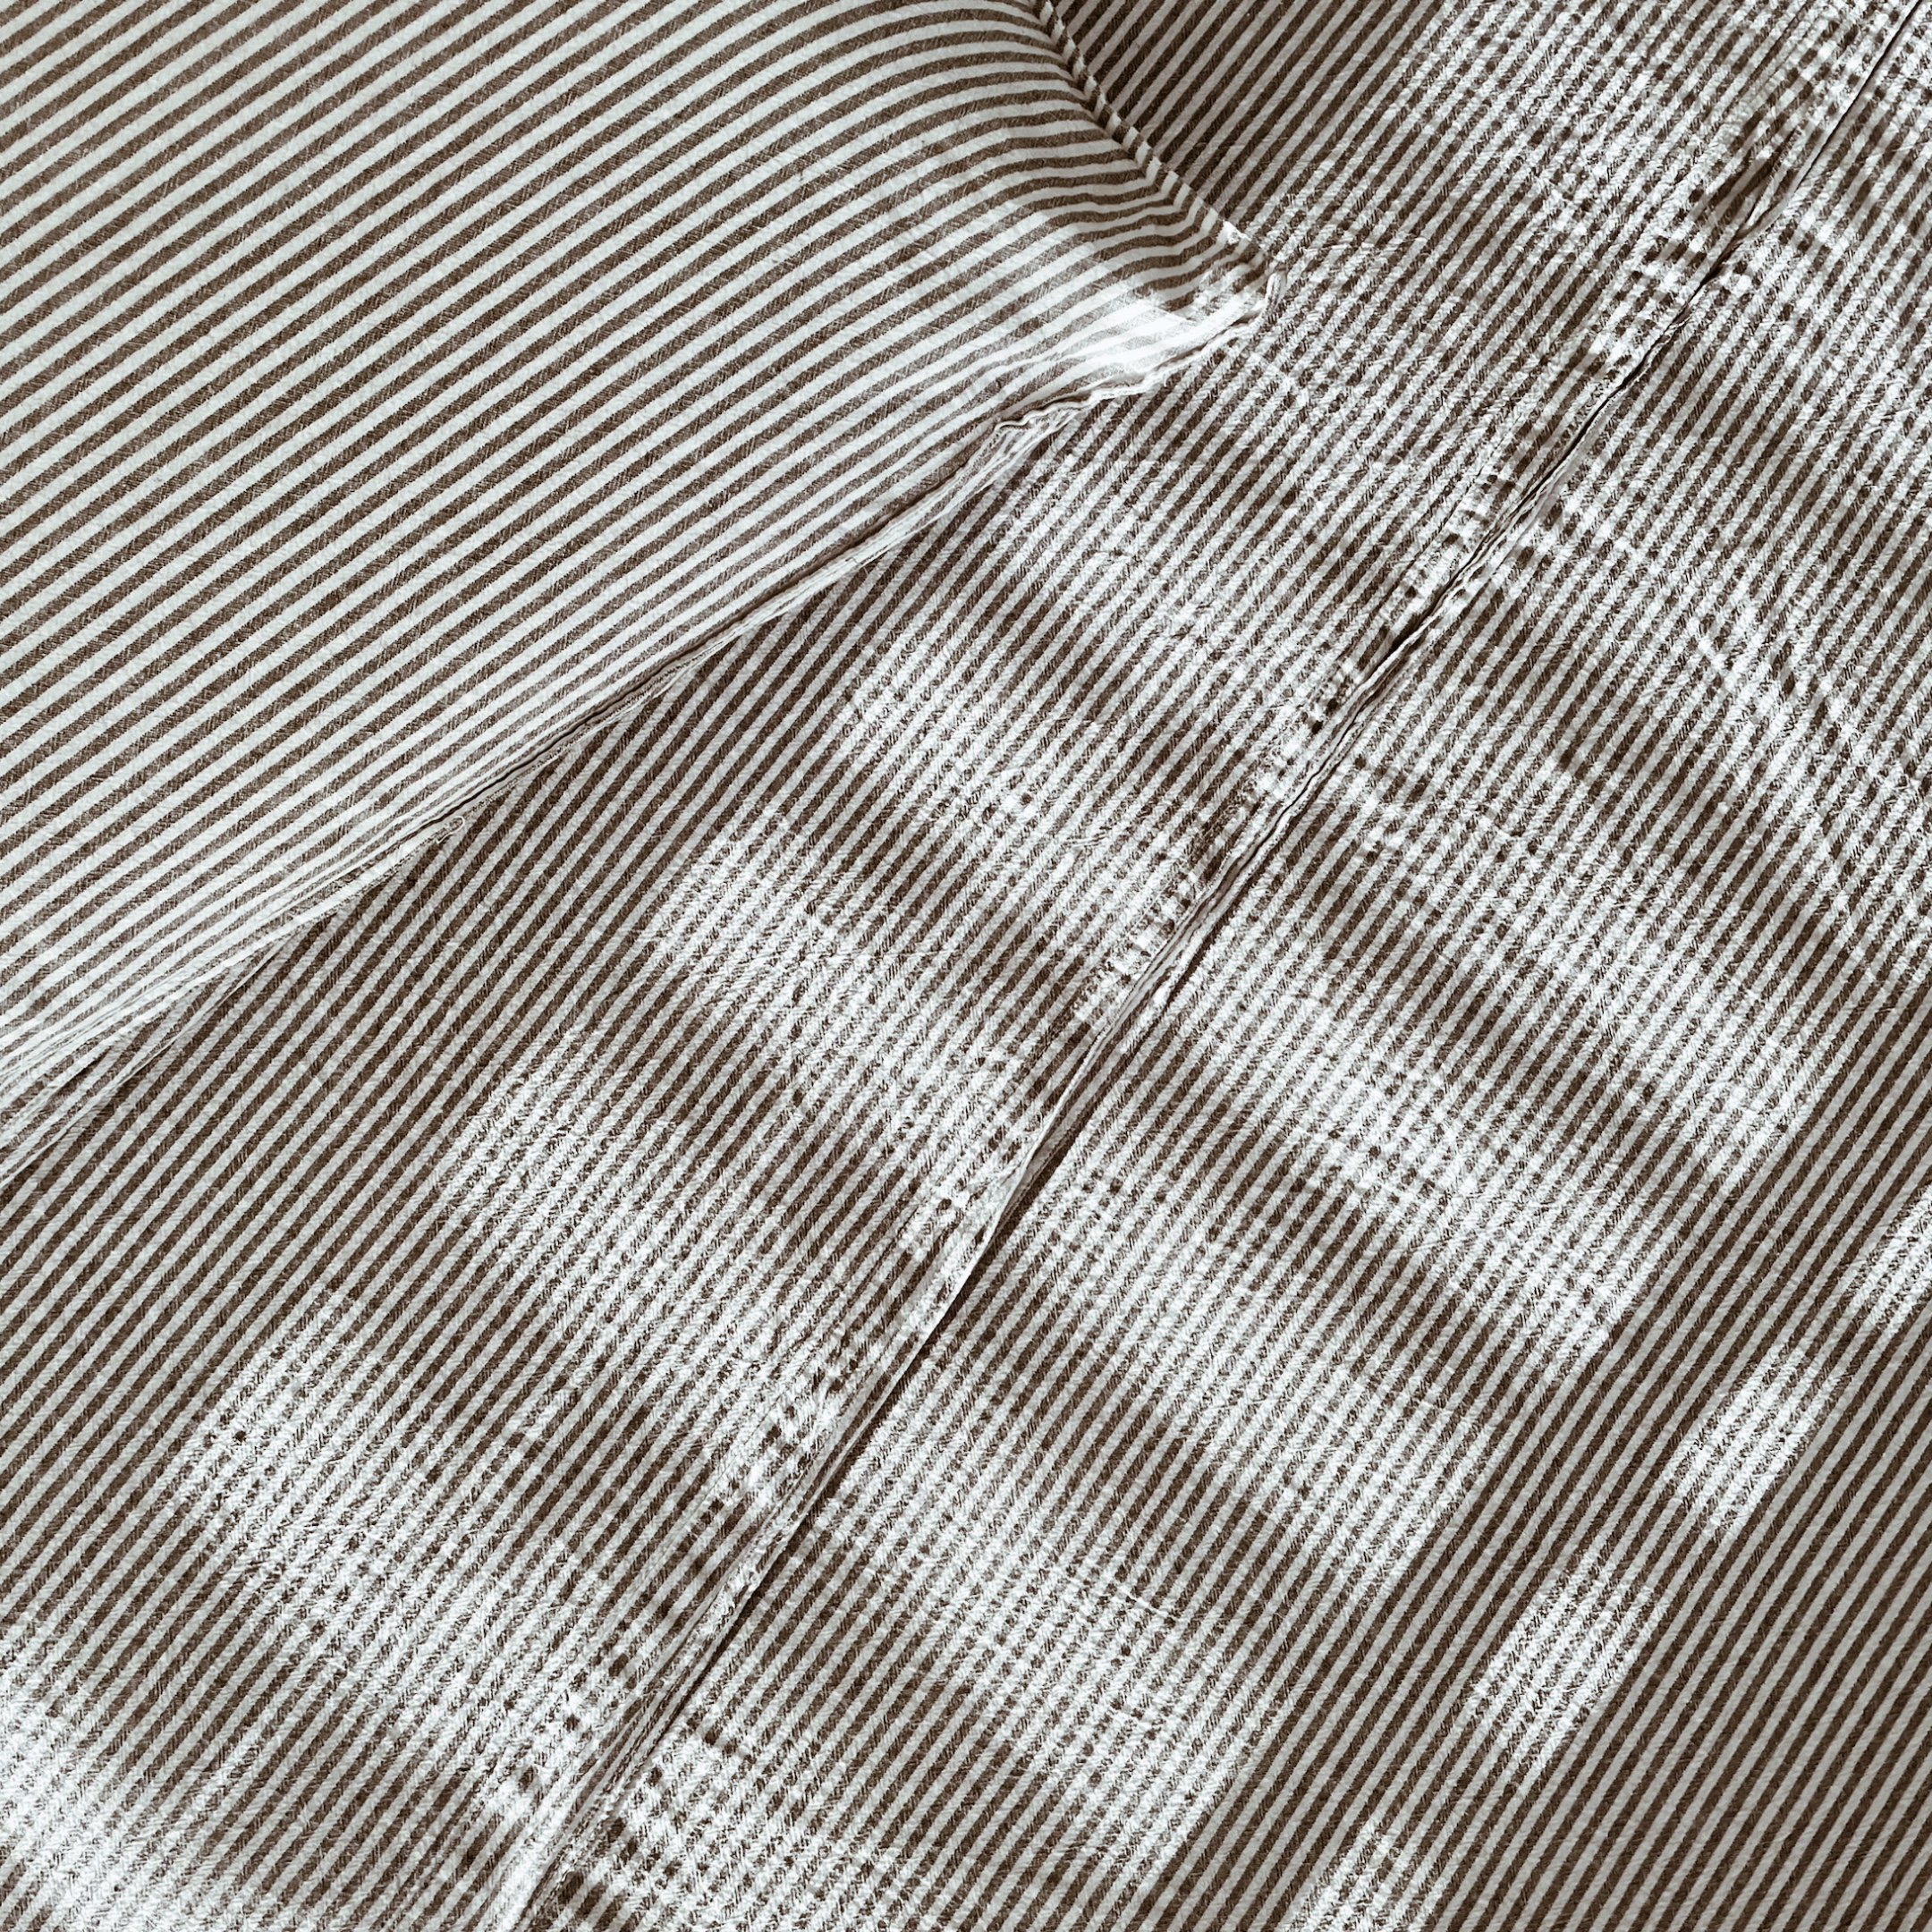 Looking down on a bed made up with grey and white striped linen sheets.